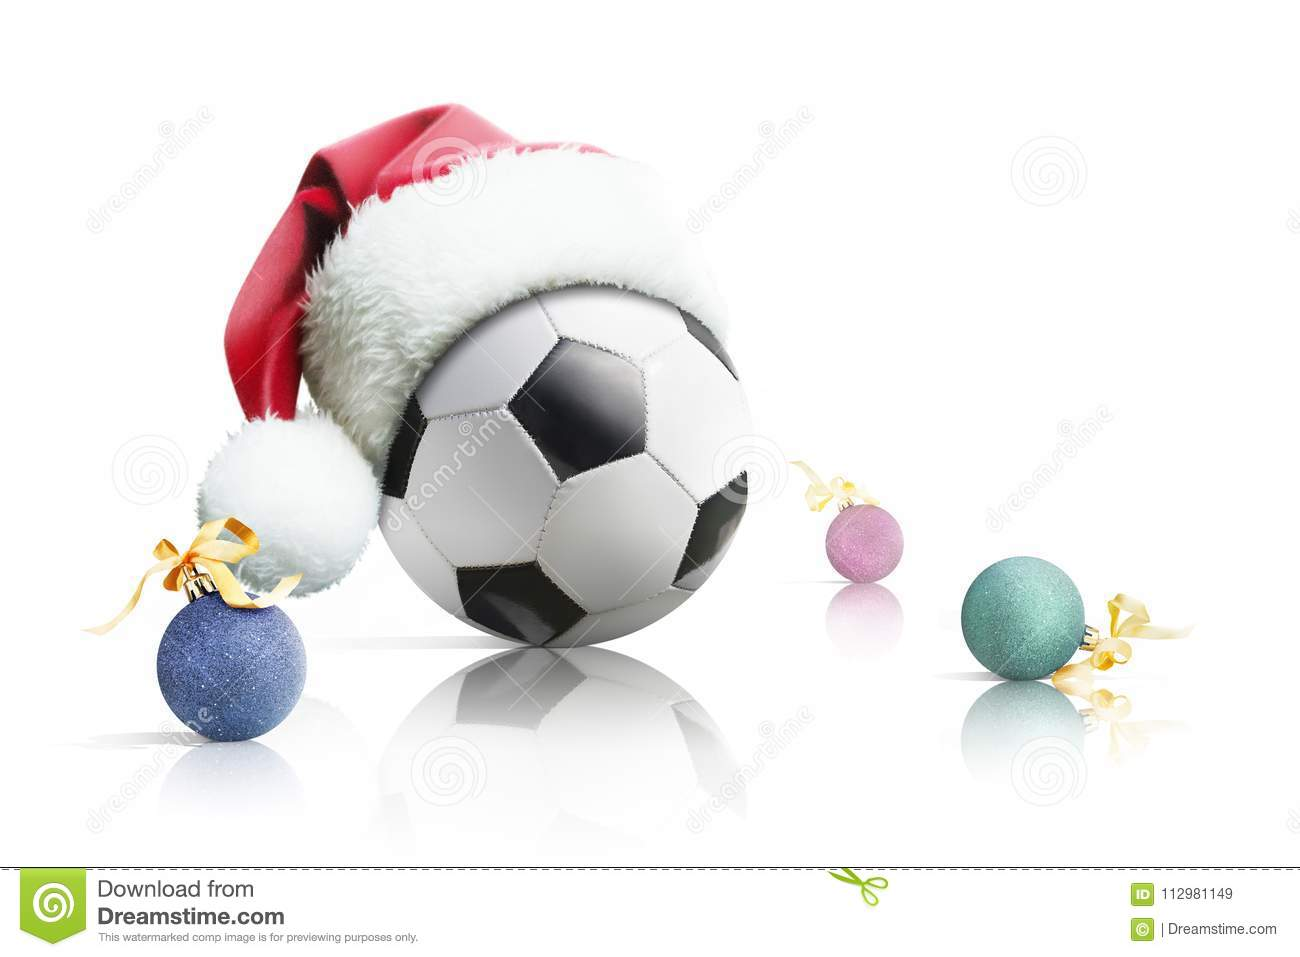 Christmas soccer. Soccer ball in santa hat Christmas toys on a white background. Isolated